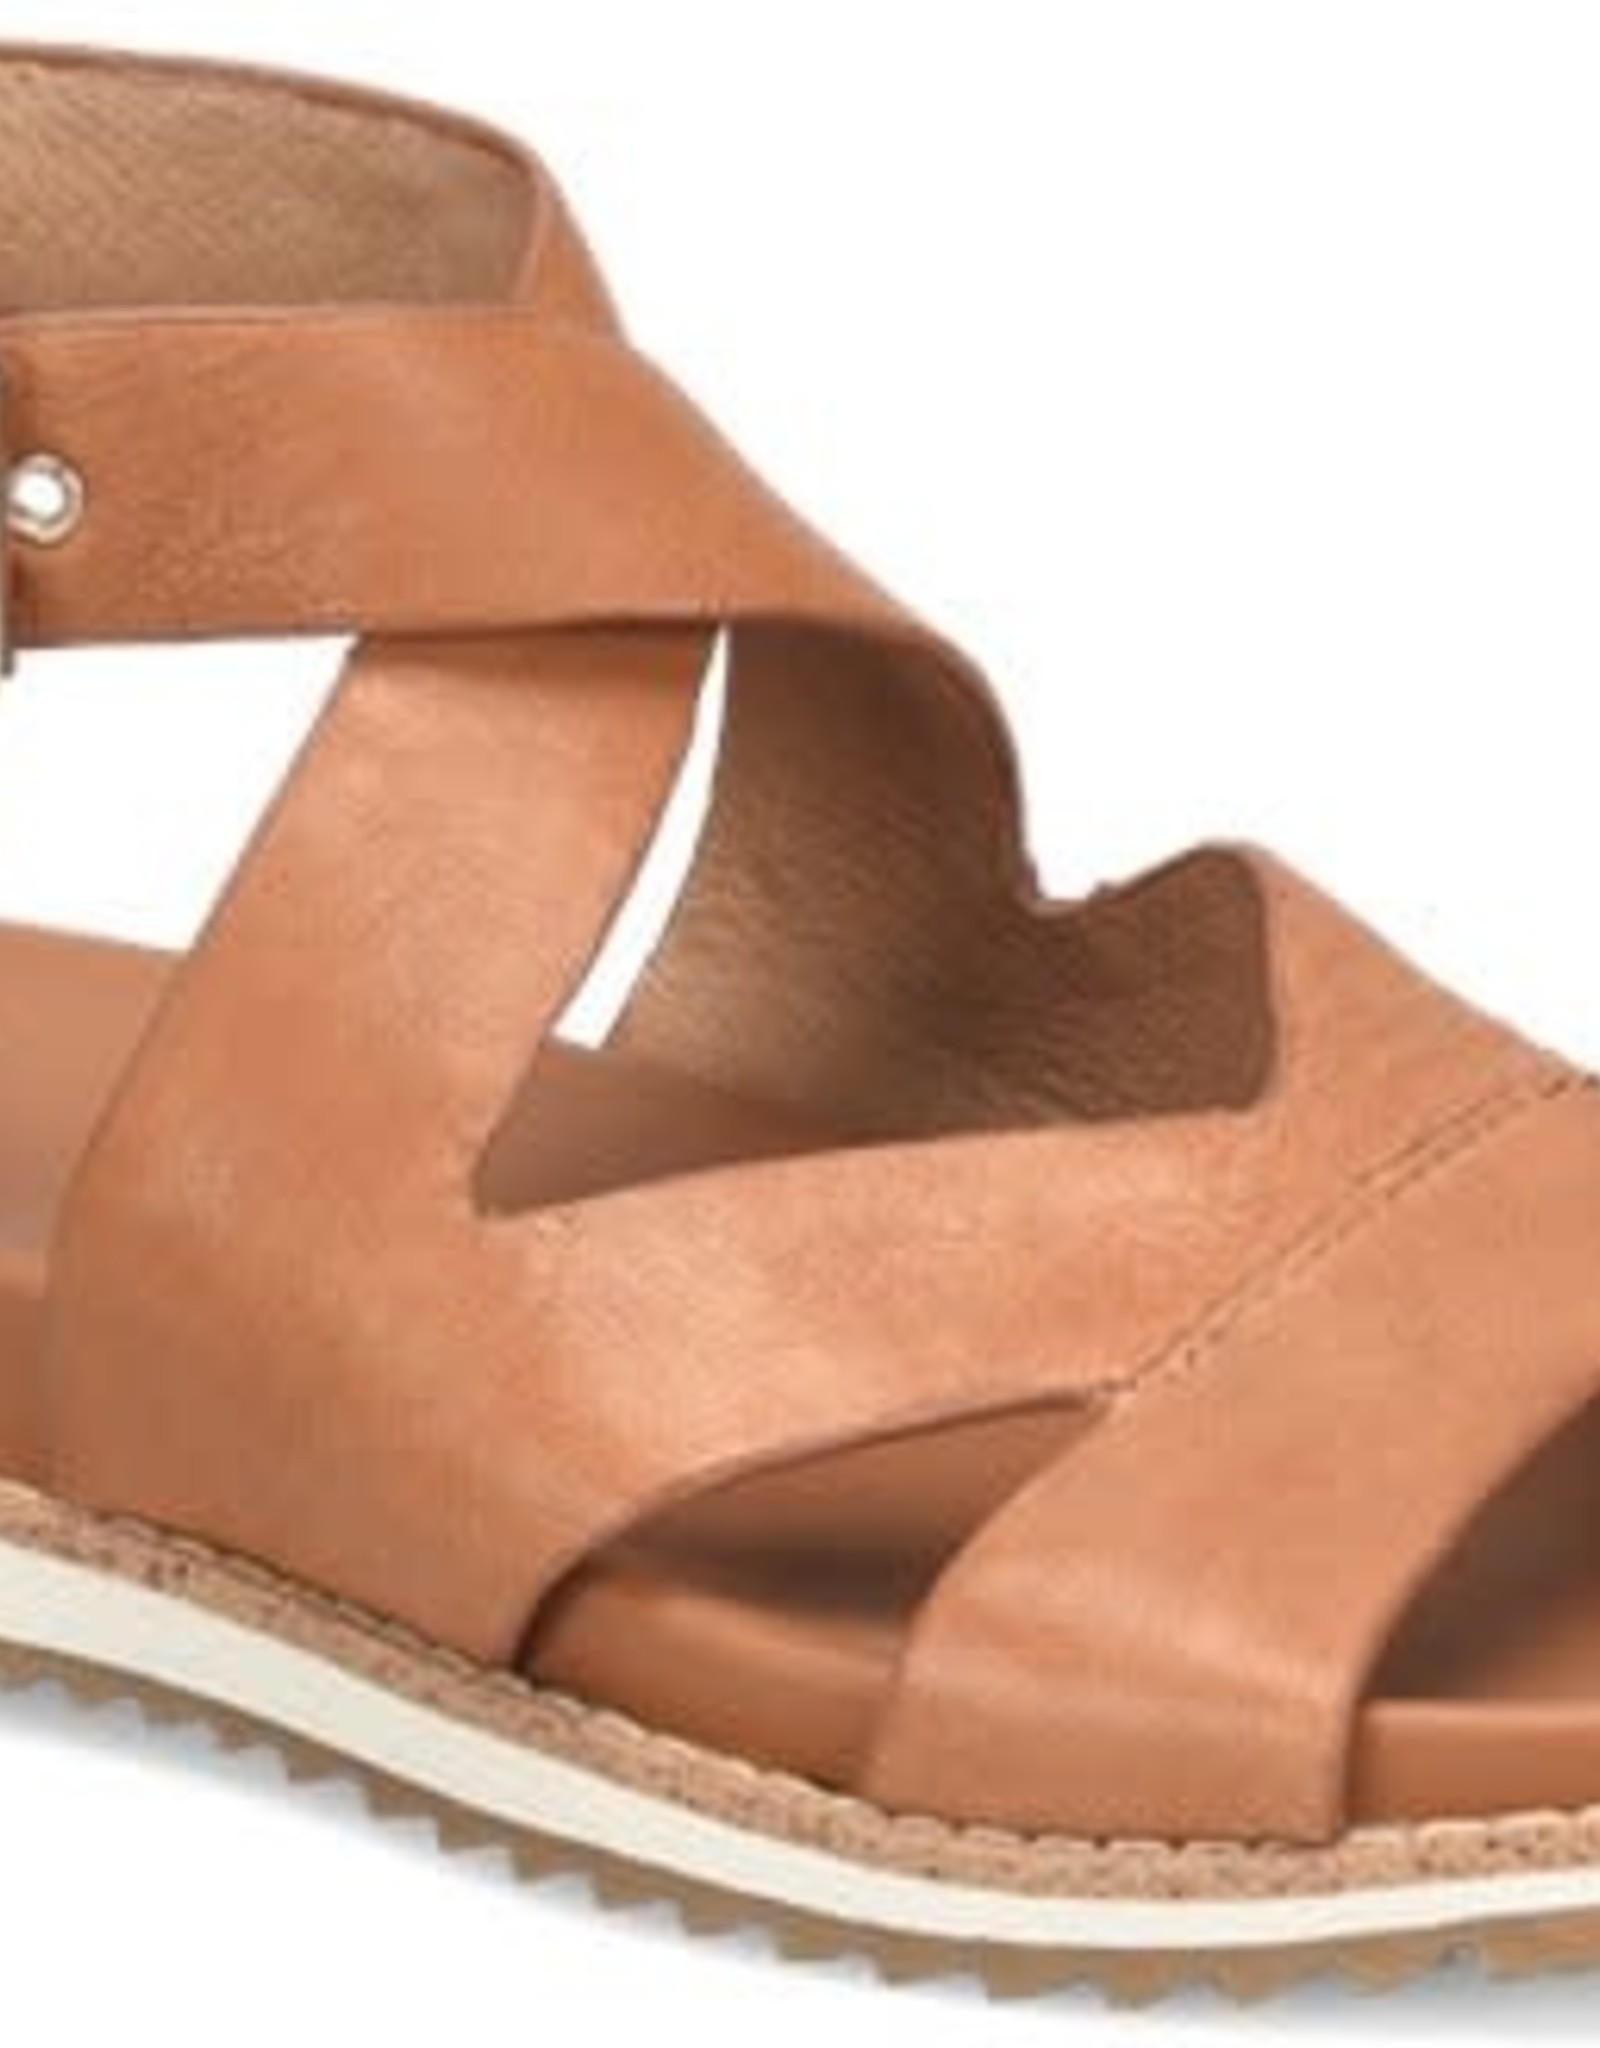 Sofft Brown Leather Strappy Sandal w/Side Buckle